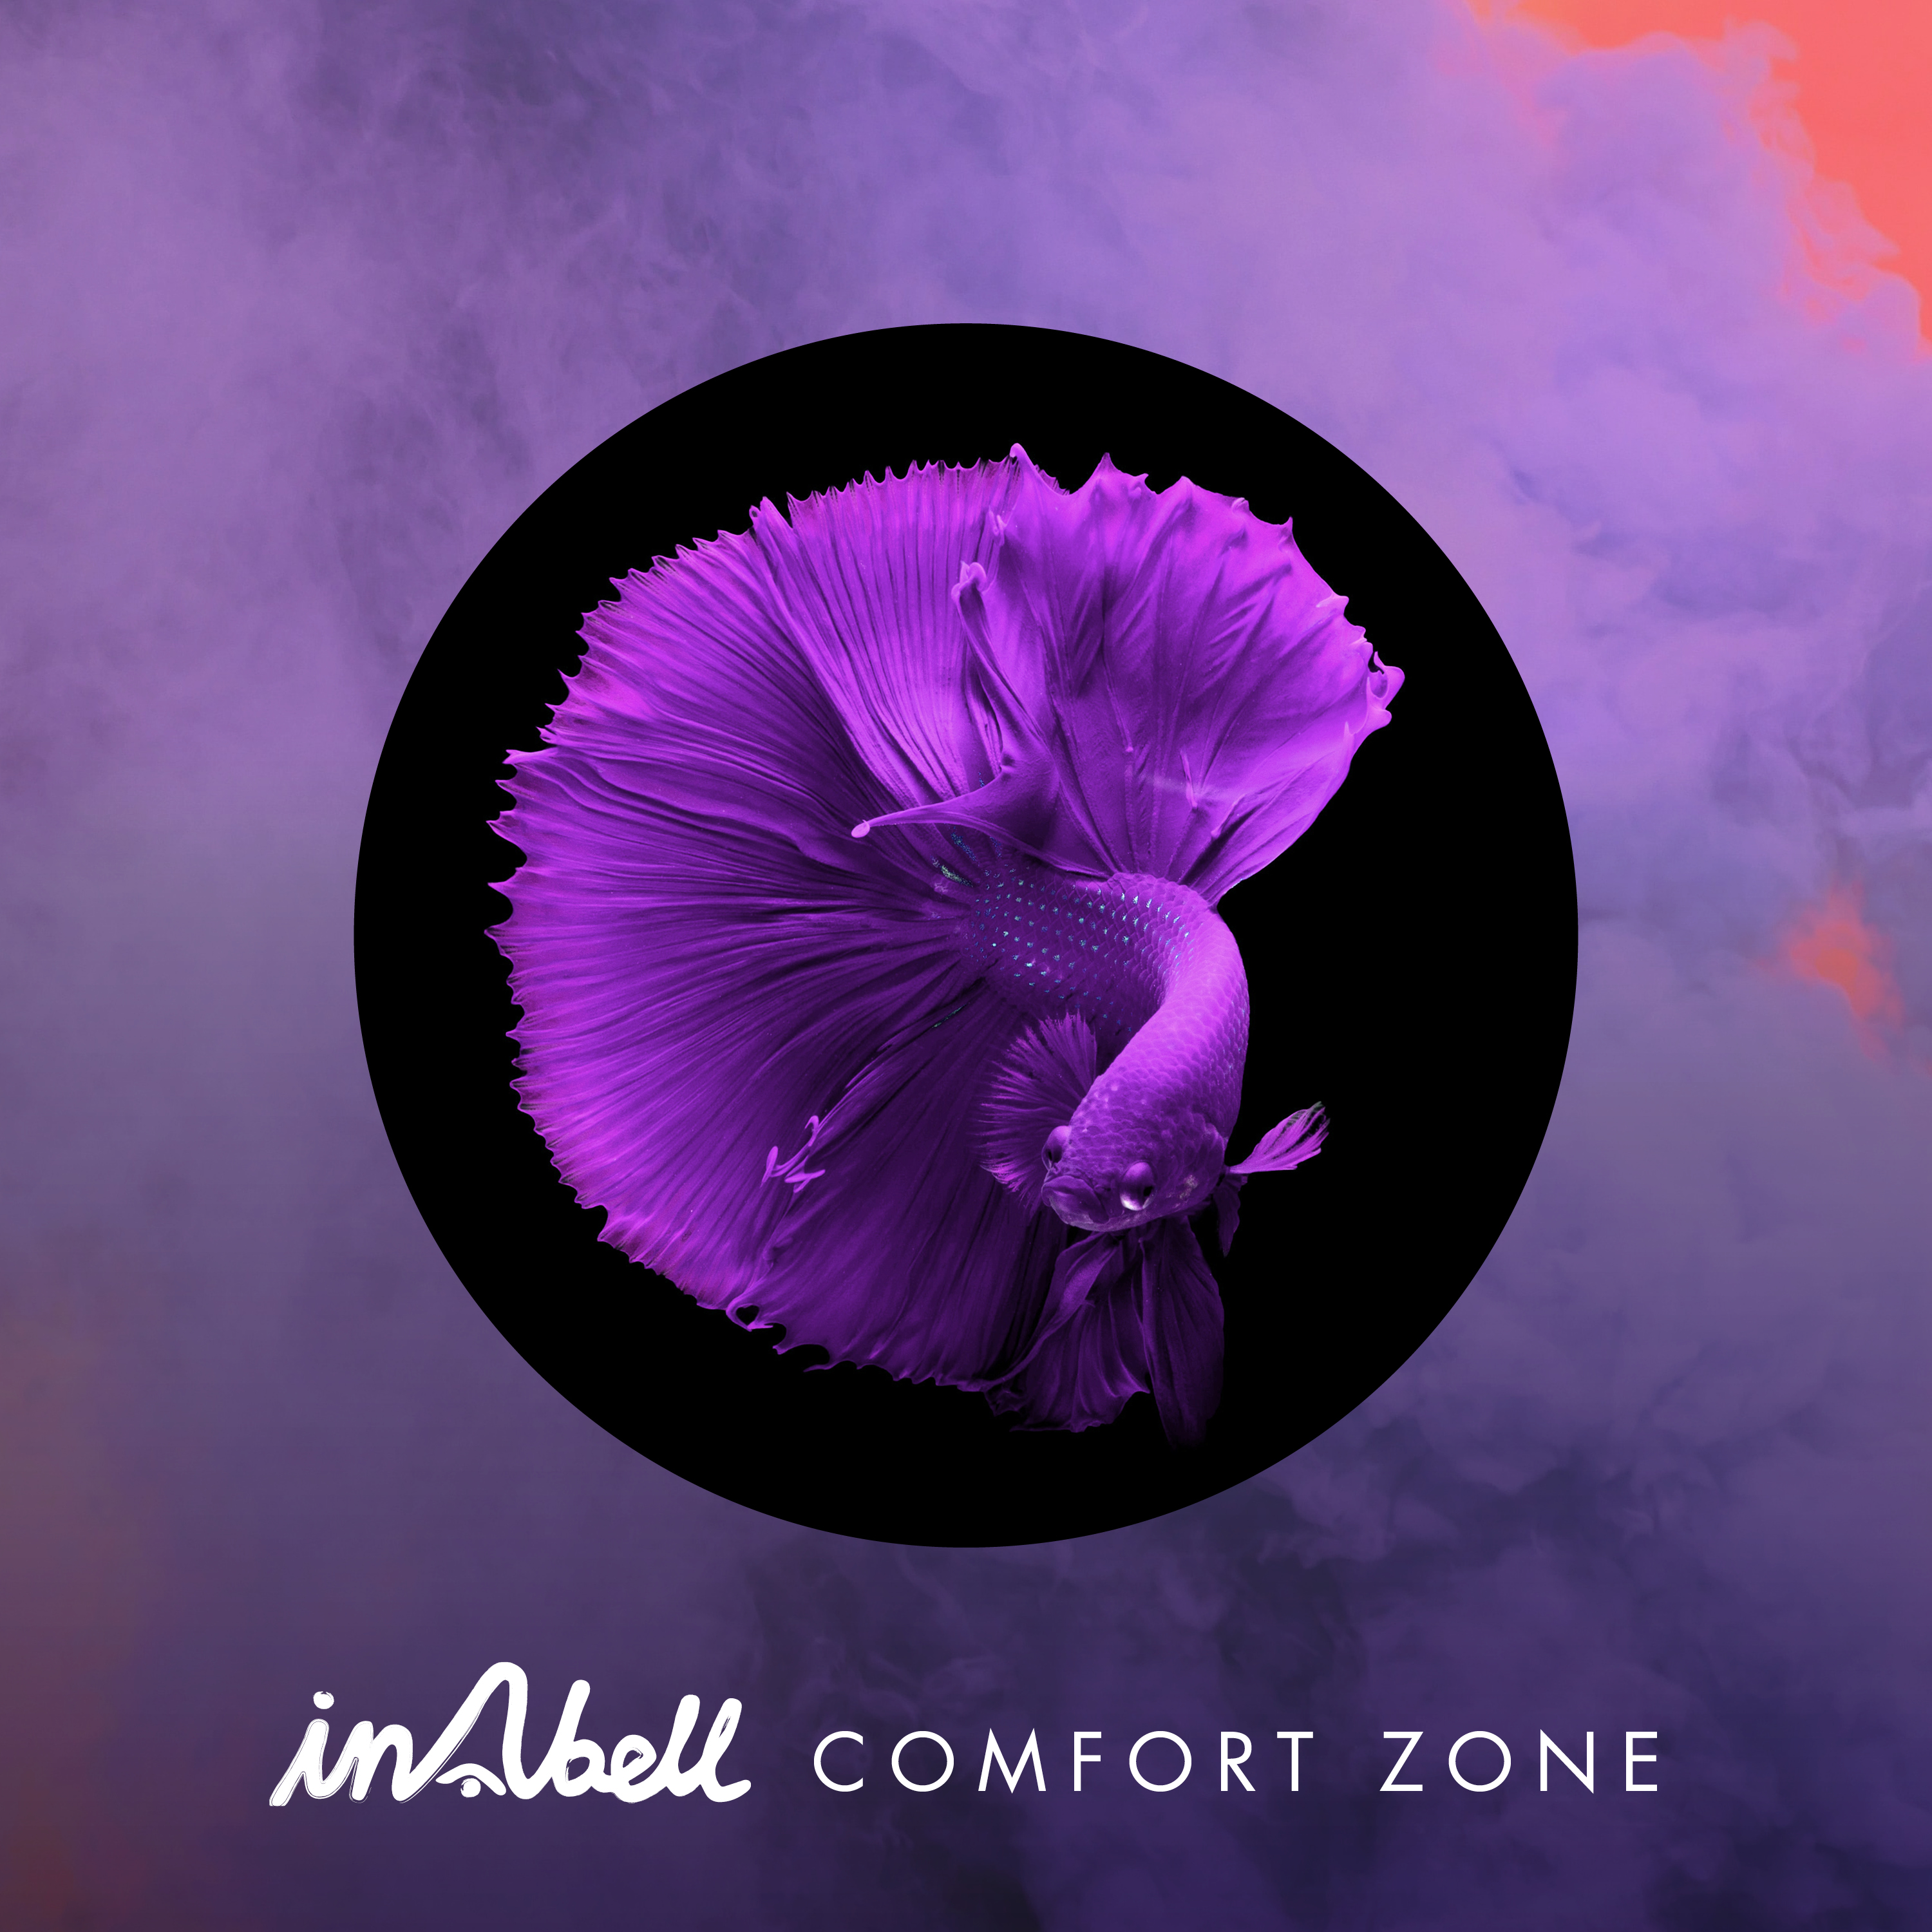 InAbell - Comfort Zone (